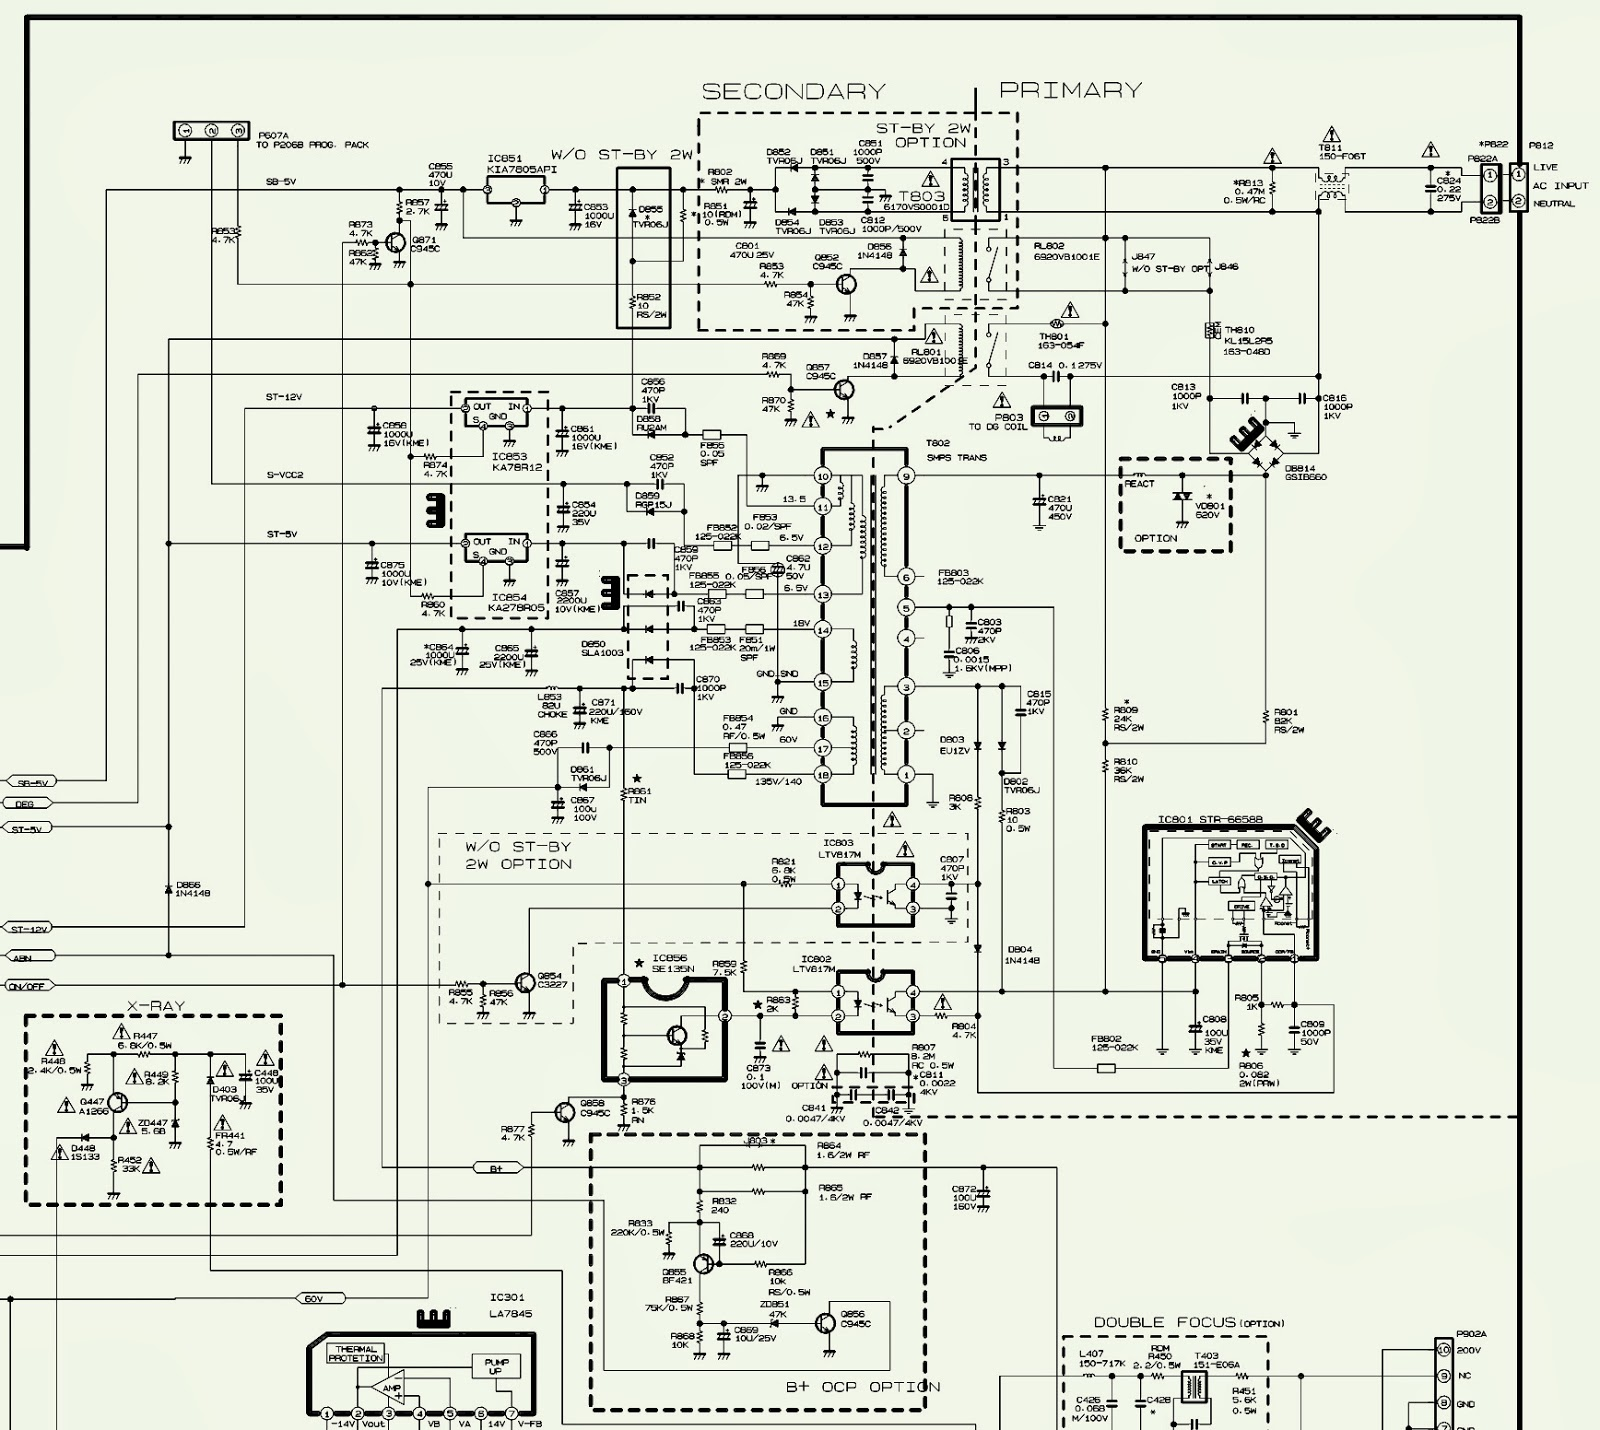 lg wiring diagrams wiring schematic diagram 32 lautmaschine com lg wiring diagrams [ 1600 x 1430 Pixel ]